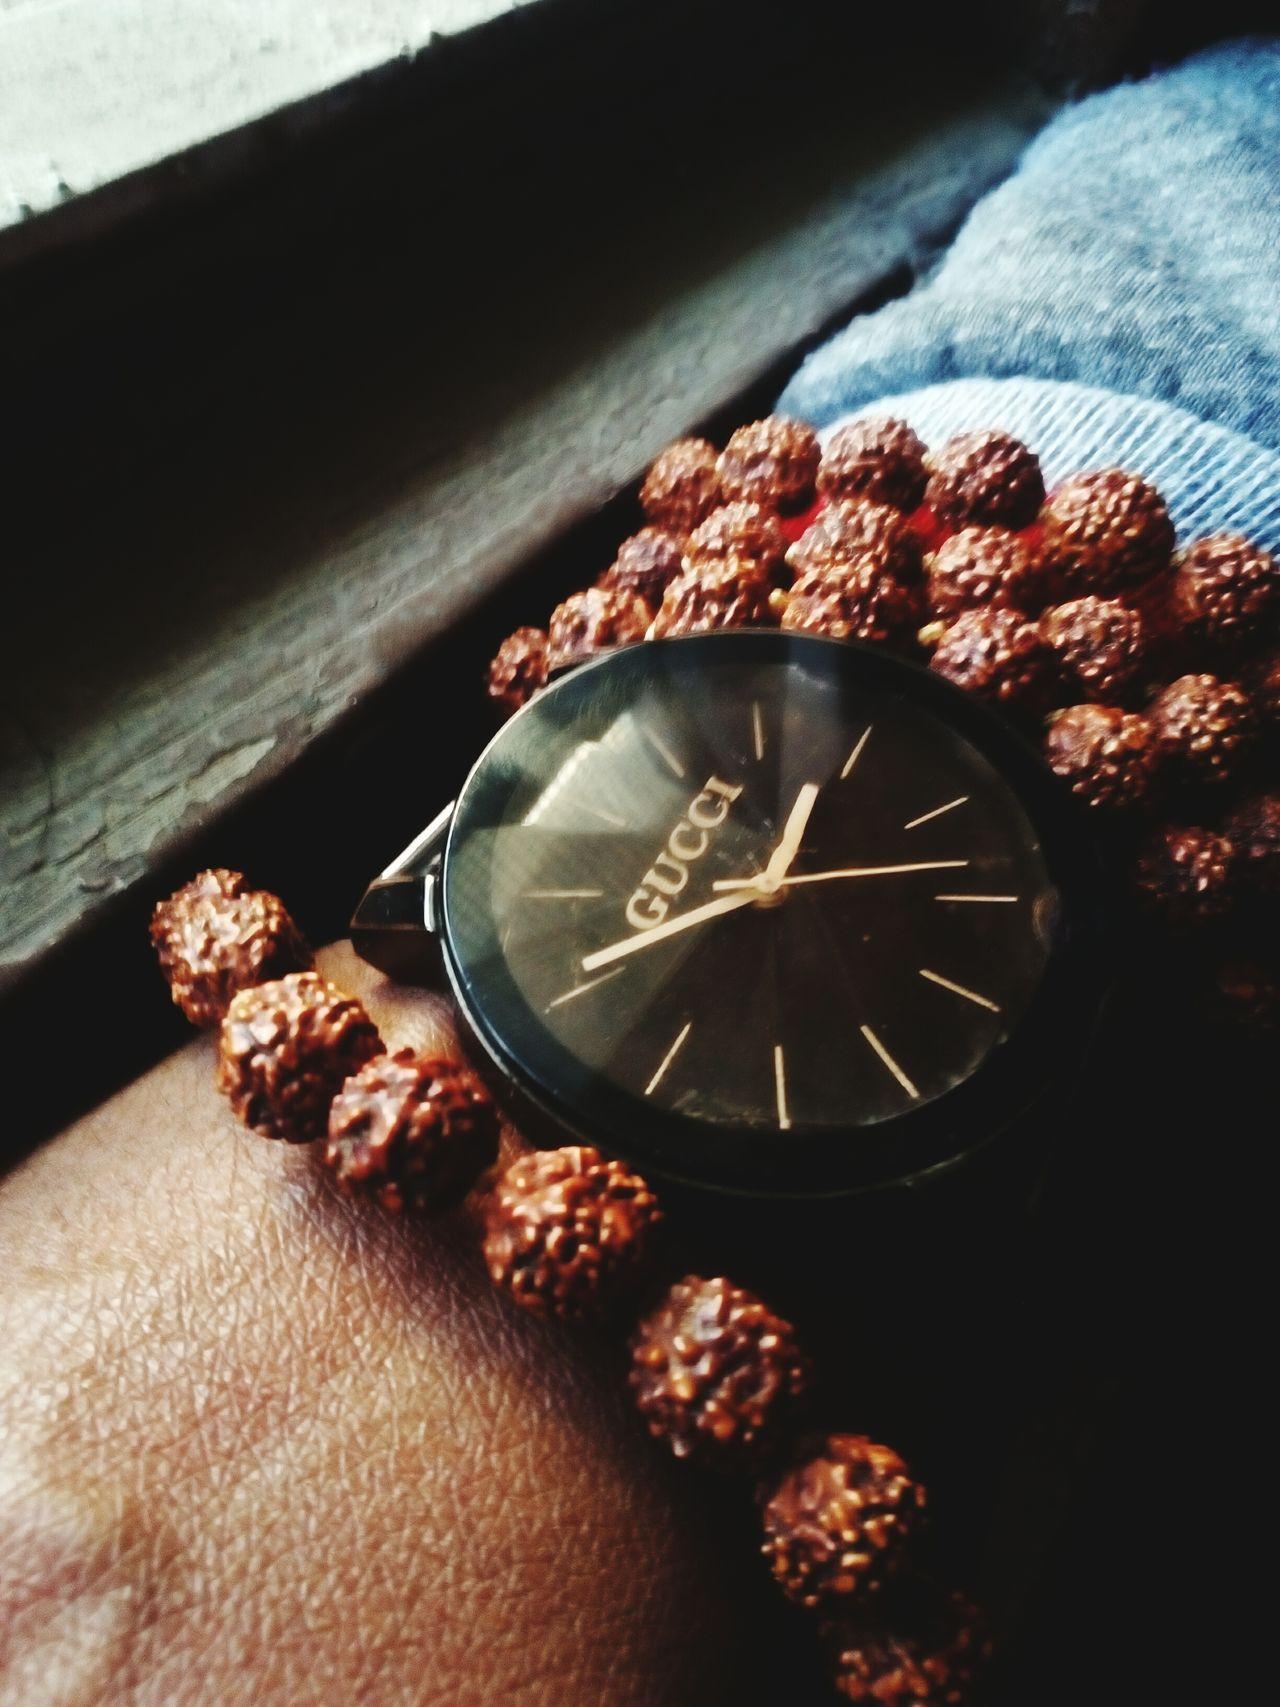 No People Clock Day Close-up Indoors  Brand GUCCI Watch